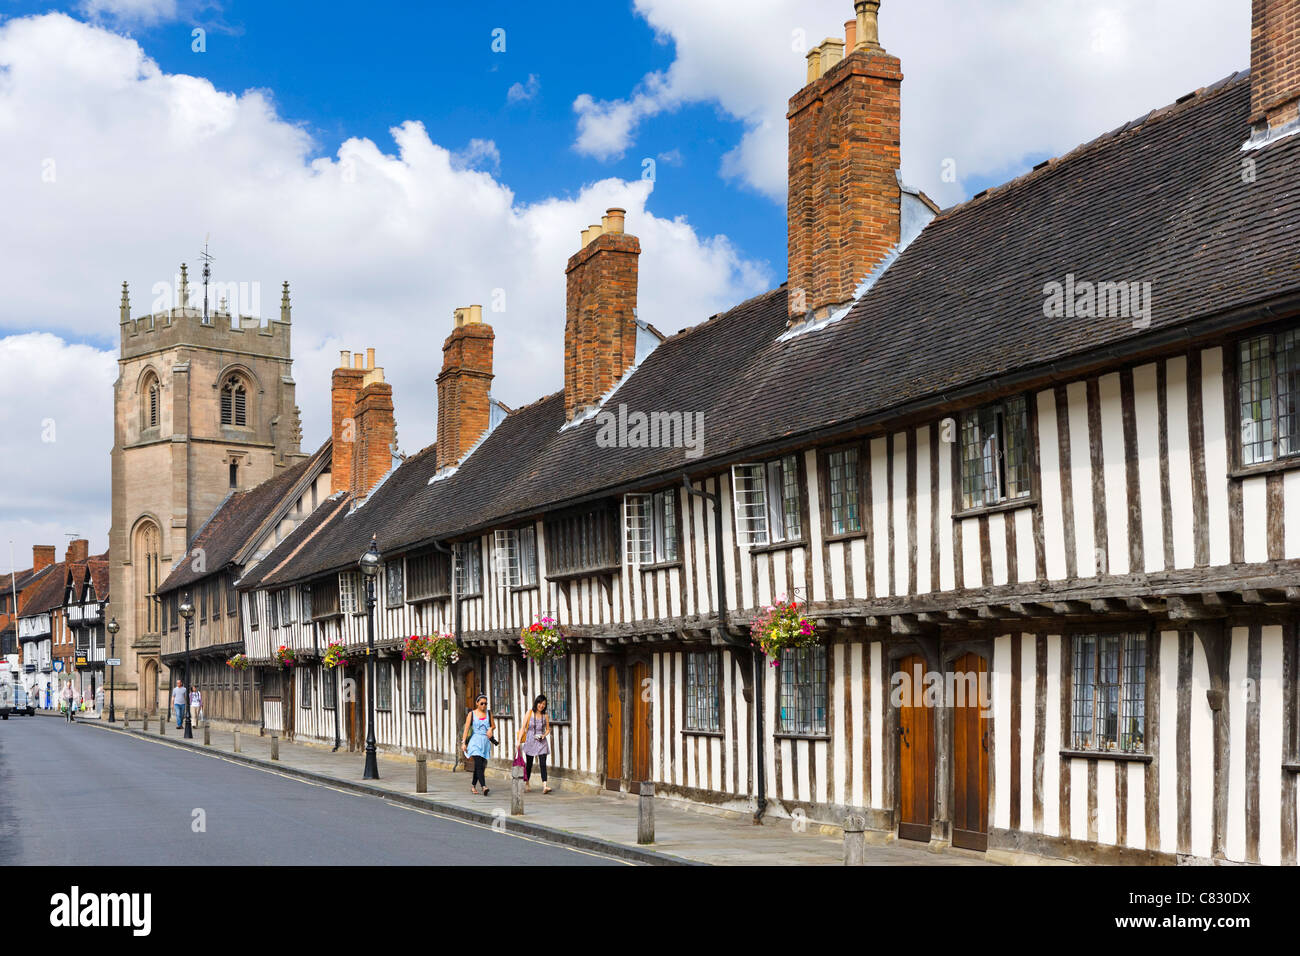 Historic houses along Church Street in the old town, Stratford-upon-Avon, Warwickshire, England, UK Stock Photo